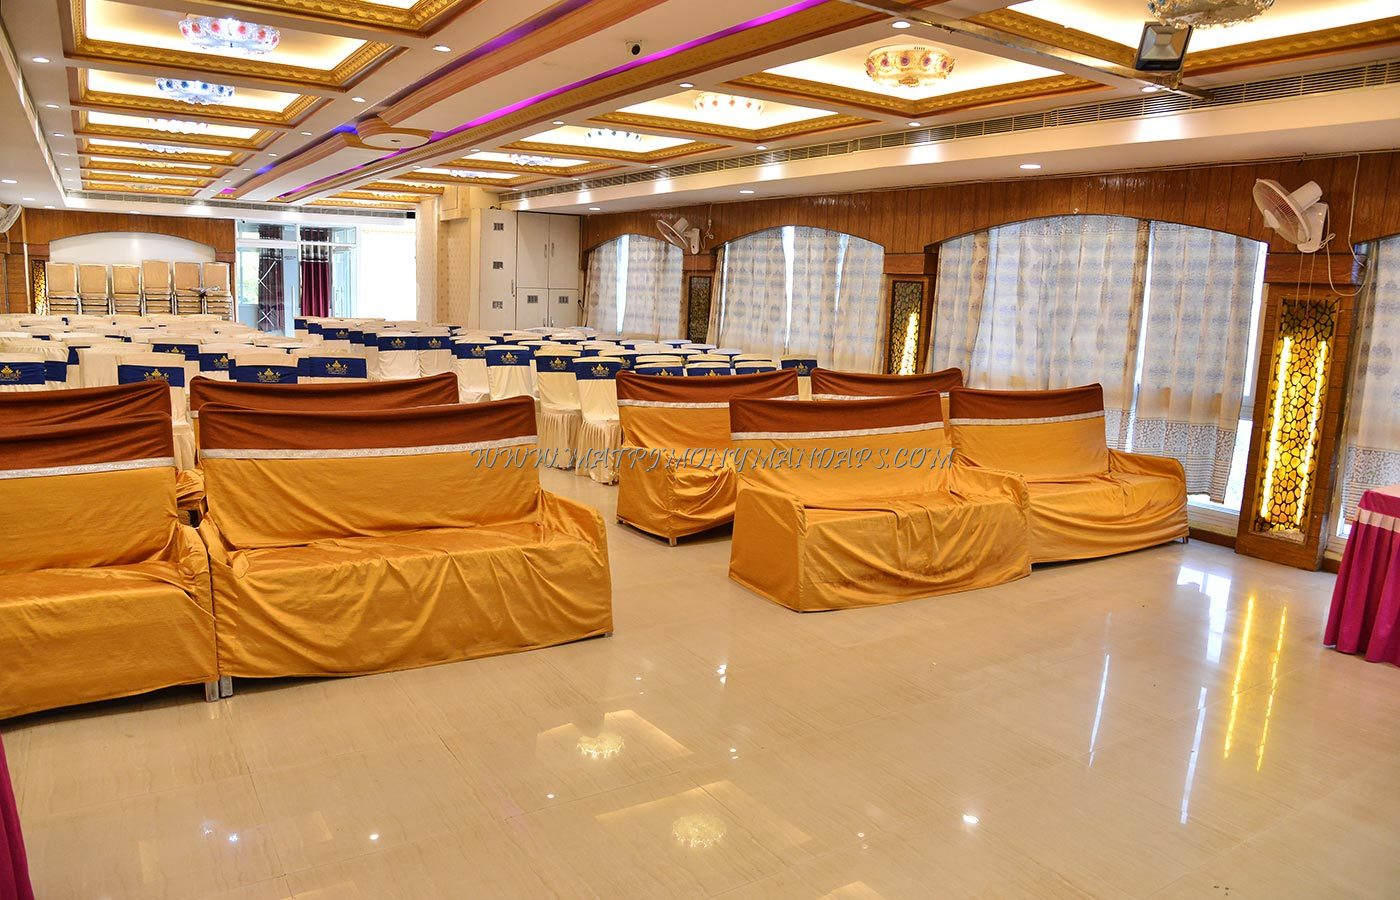 Find the availability of the Sree Vedika Convention Hall (A/C) in Padmarao Nagar, Hyderabad and avail special offers